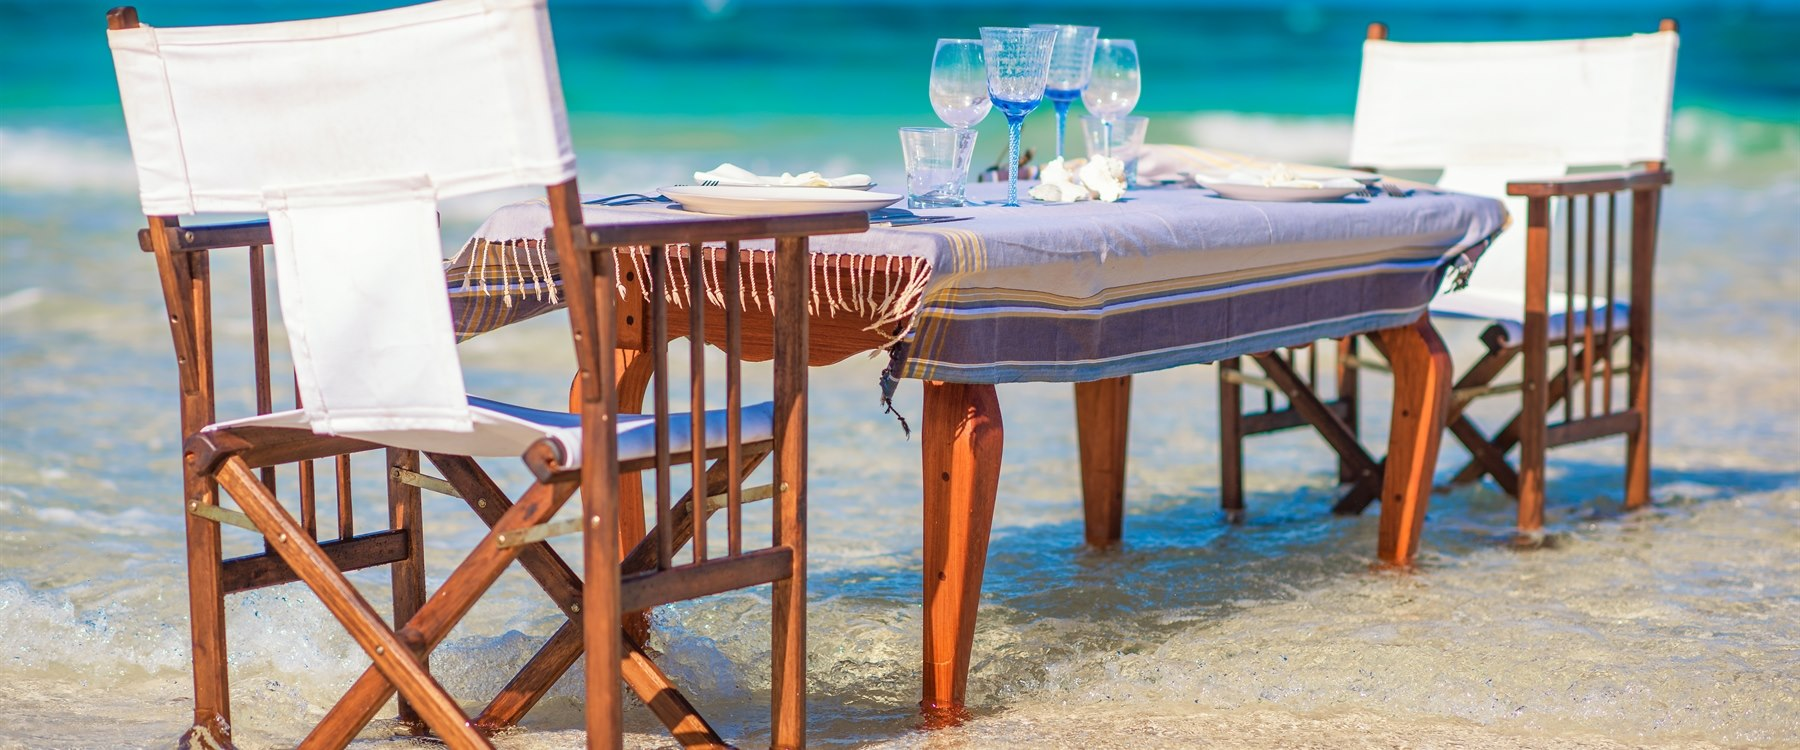 Beachside Dining on Thanda Island